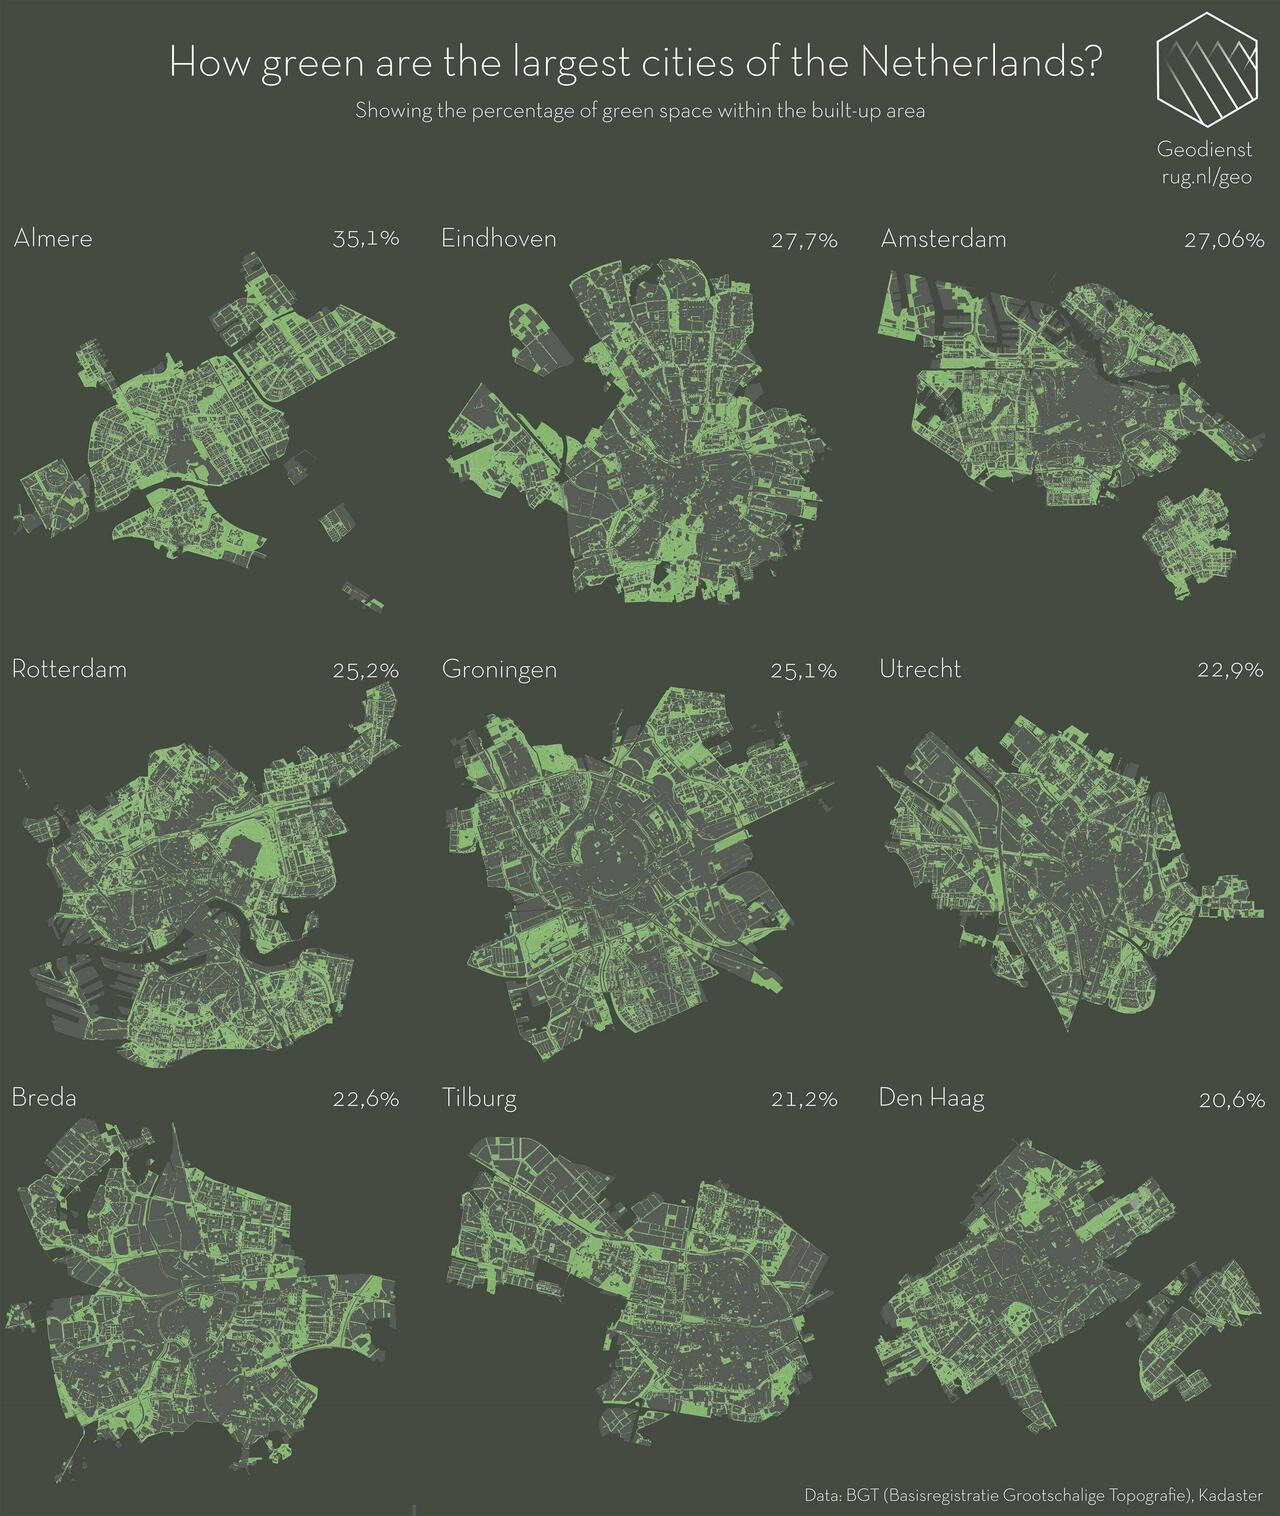 How Green are the largest cities of the Netherlands